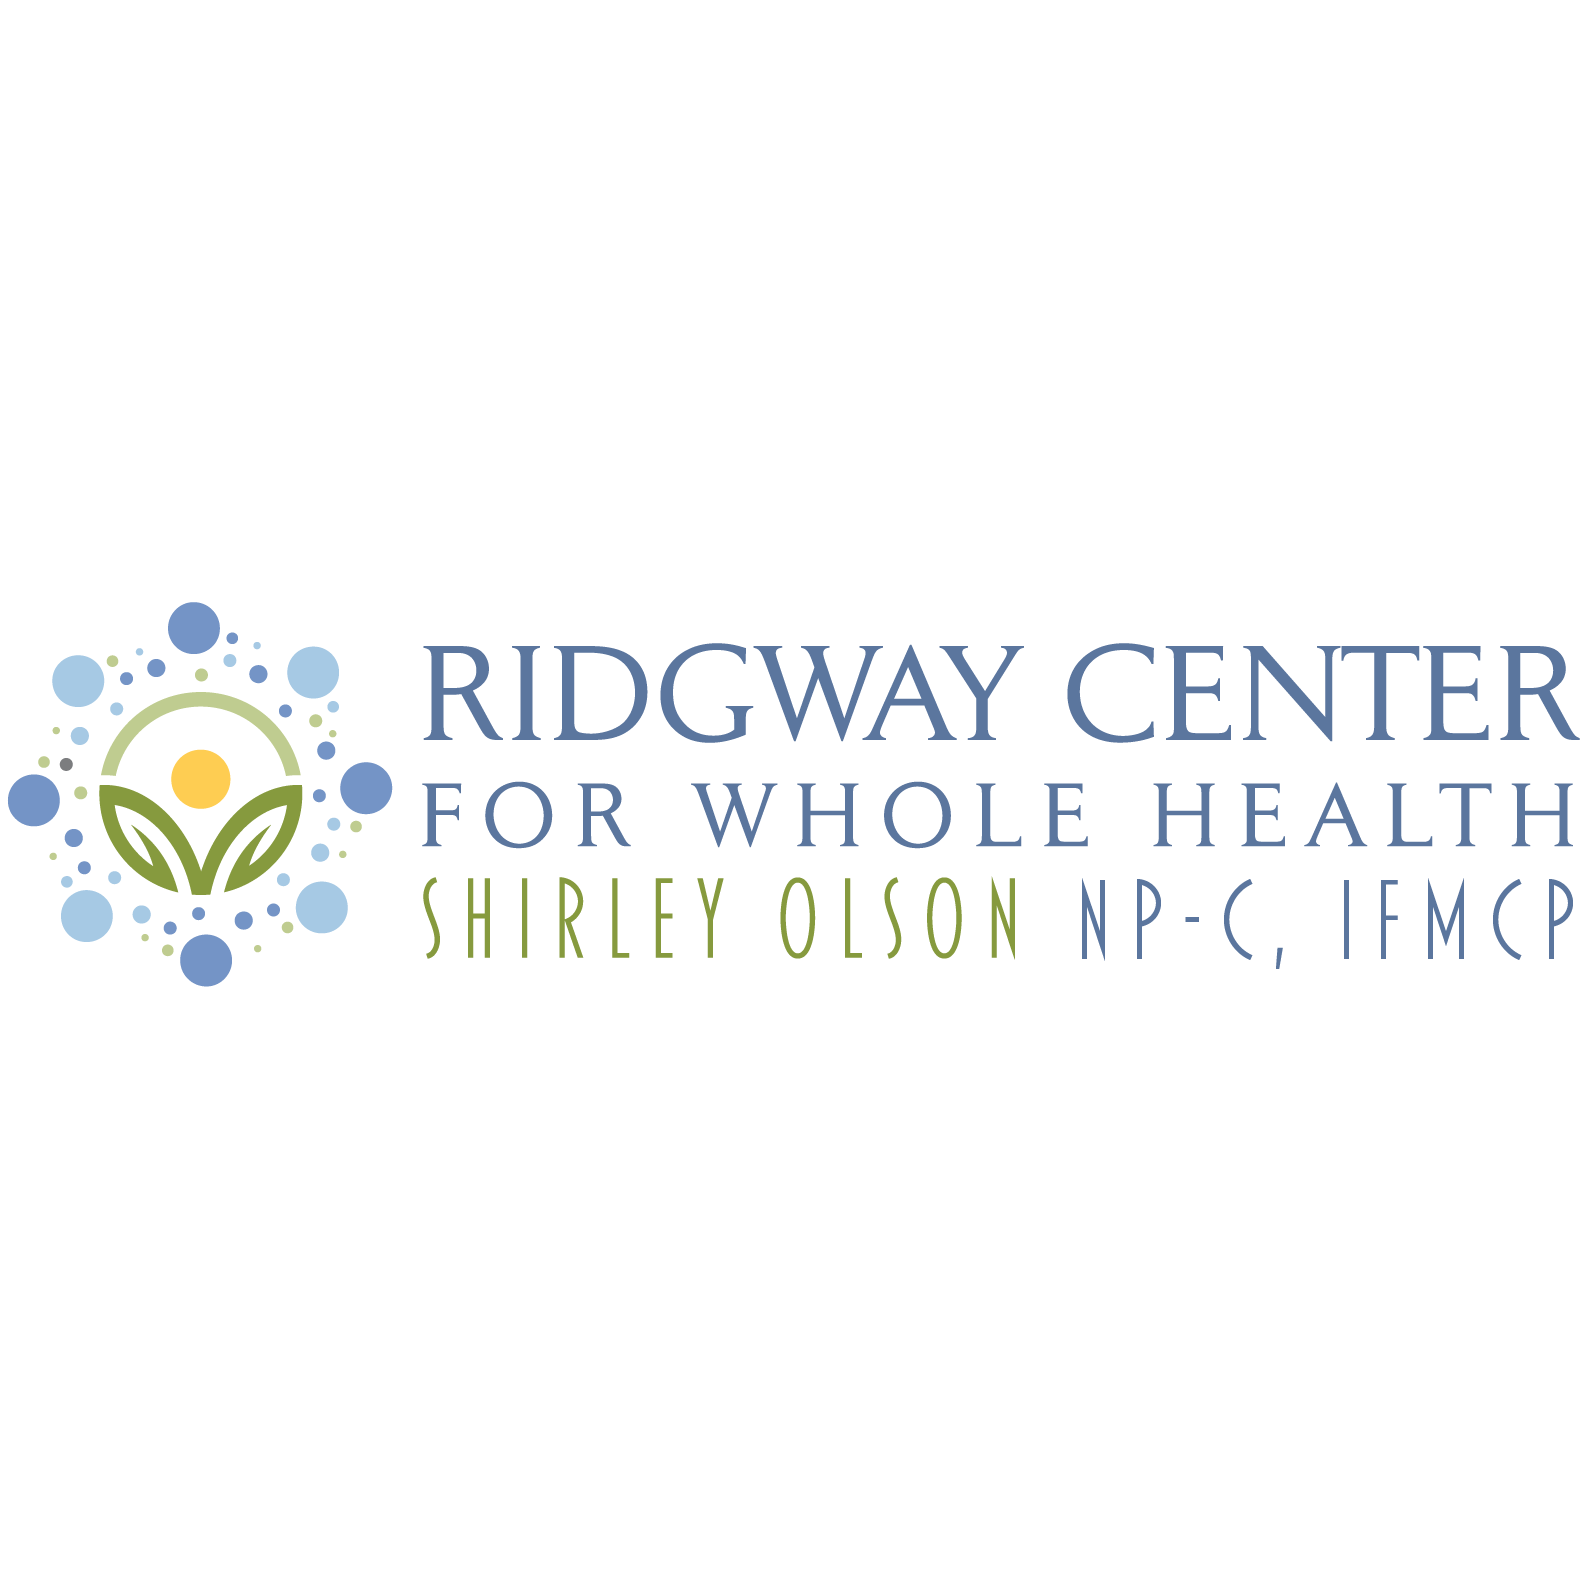 Ridgway Center For Whole Health